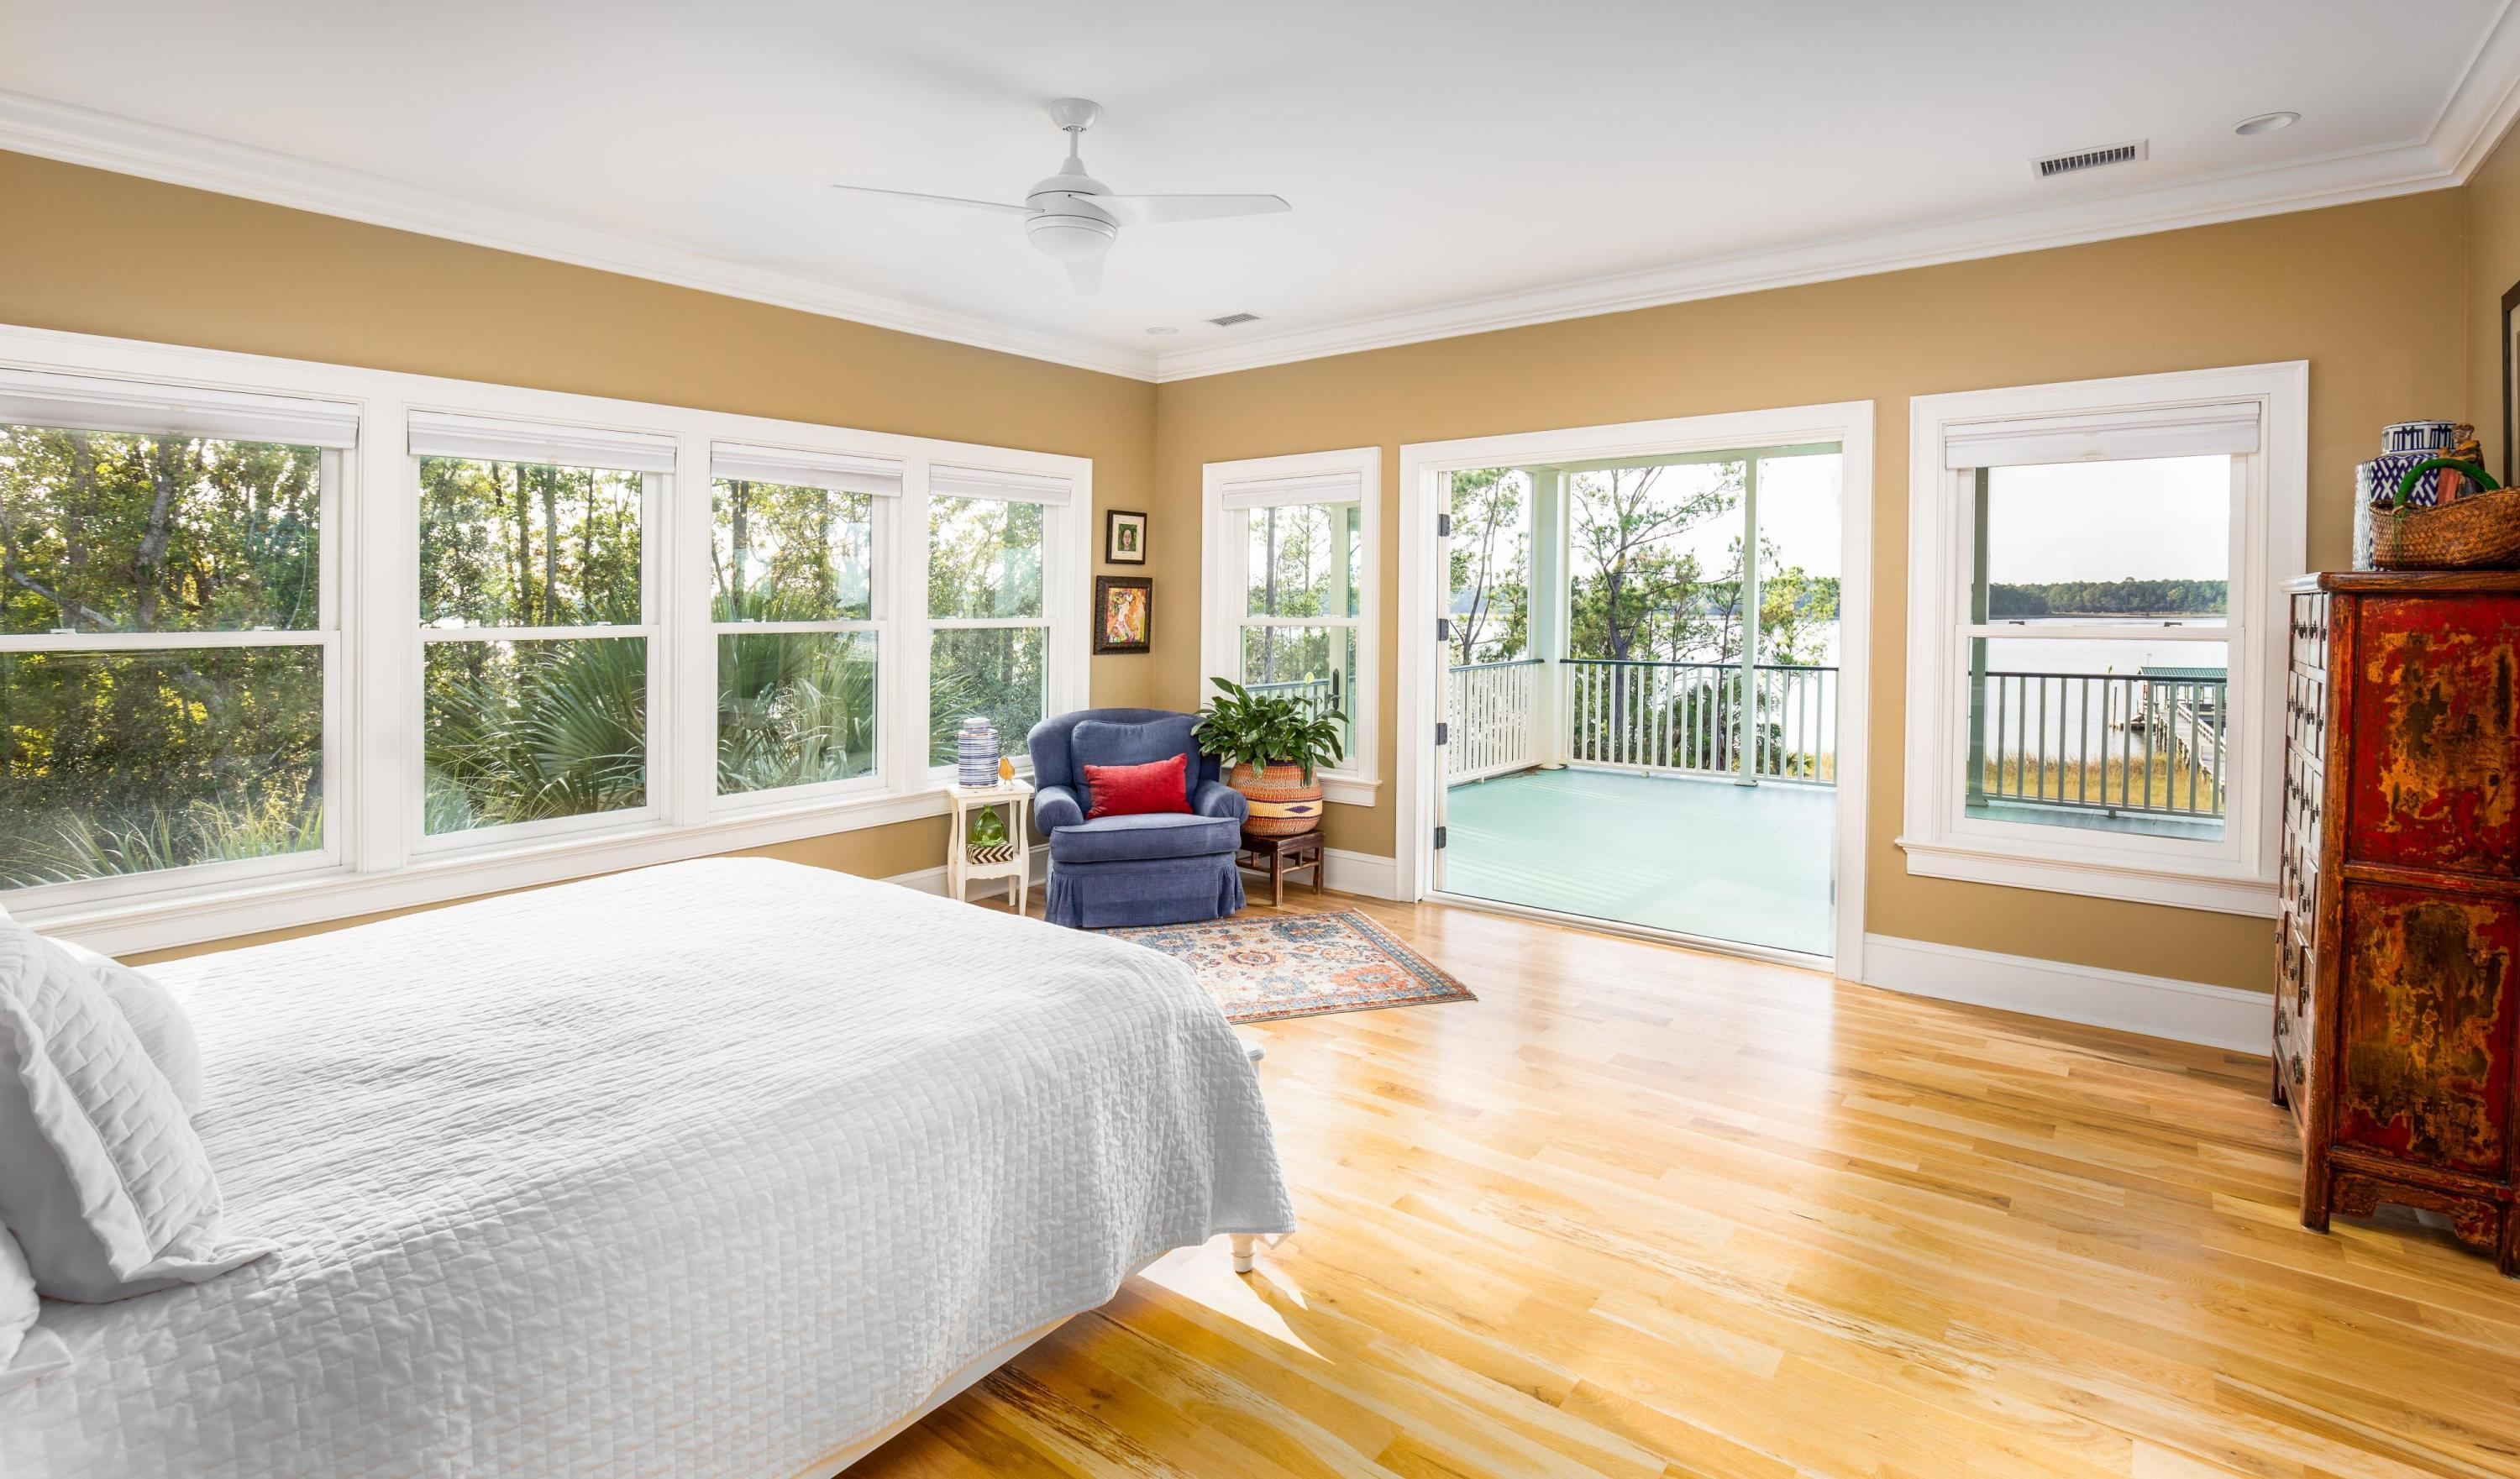 Rivertowne On The Wando Homes For Sale - 2212 Hartfords Bluff, Mount Pleasant, SC - 35